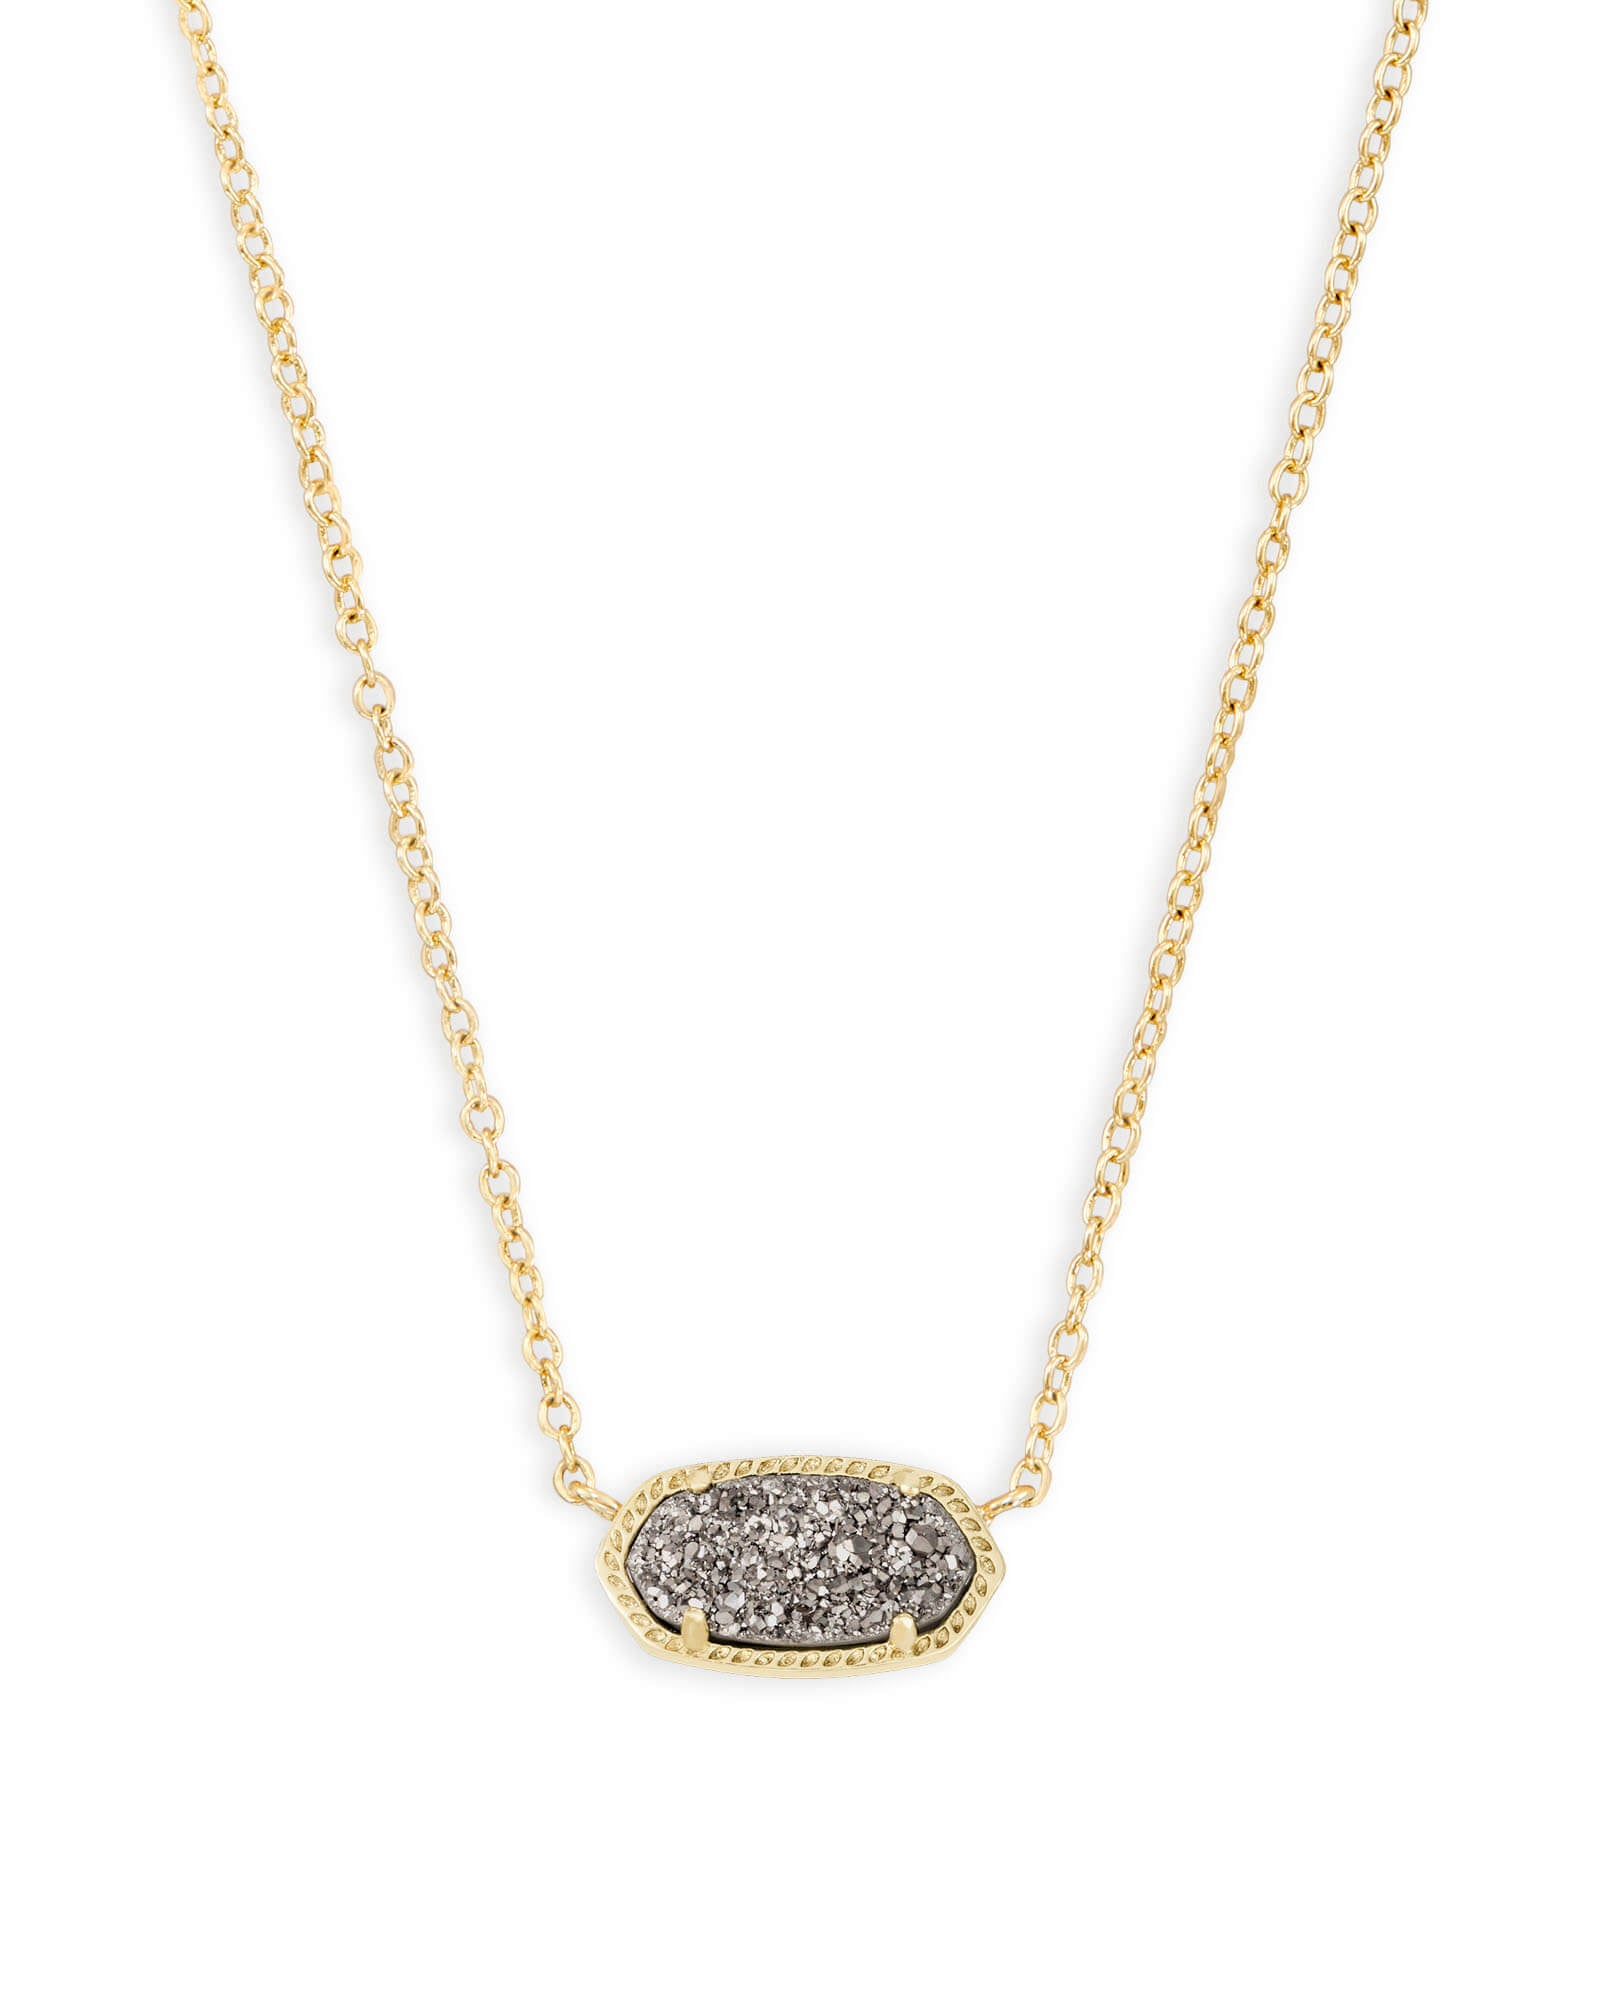 Elisa Gold Platinum Drusy Necklace